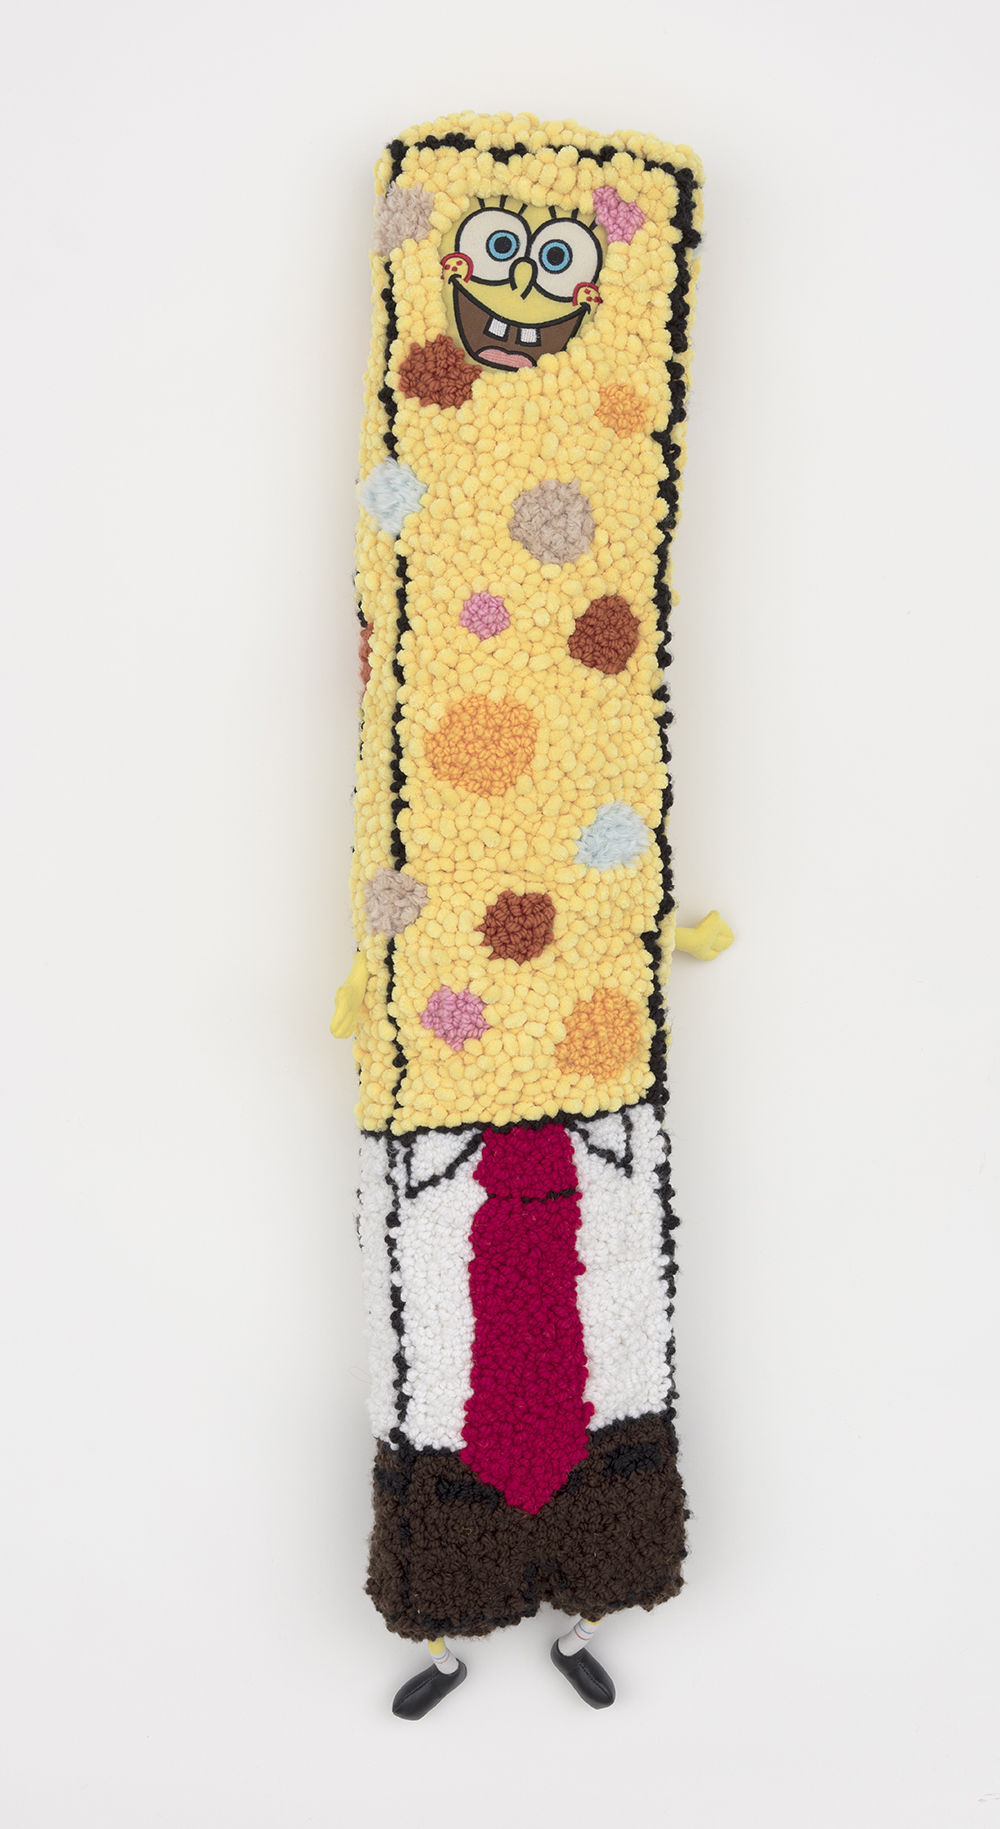 Hannah Epstein. <em>Stretch Bob Square Pants</em>, 2019. Wool, acrylic, burlap, polyfill and found Sponge Bob body parts, 47 x 14 x 4 inches (119.4 x 35.6 x 10.2 cm)